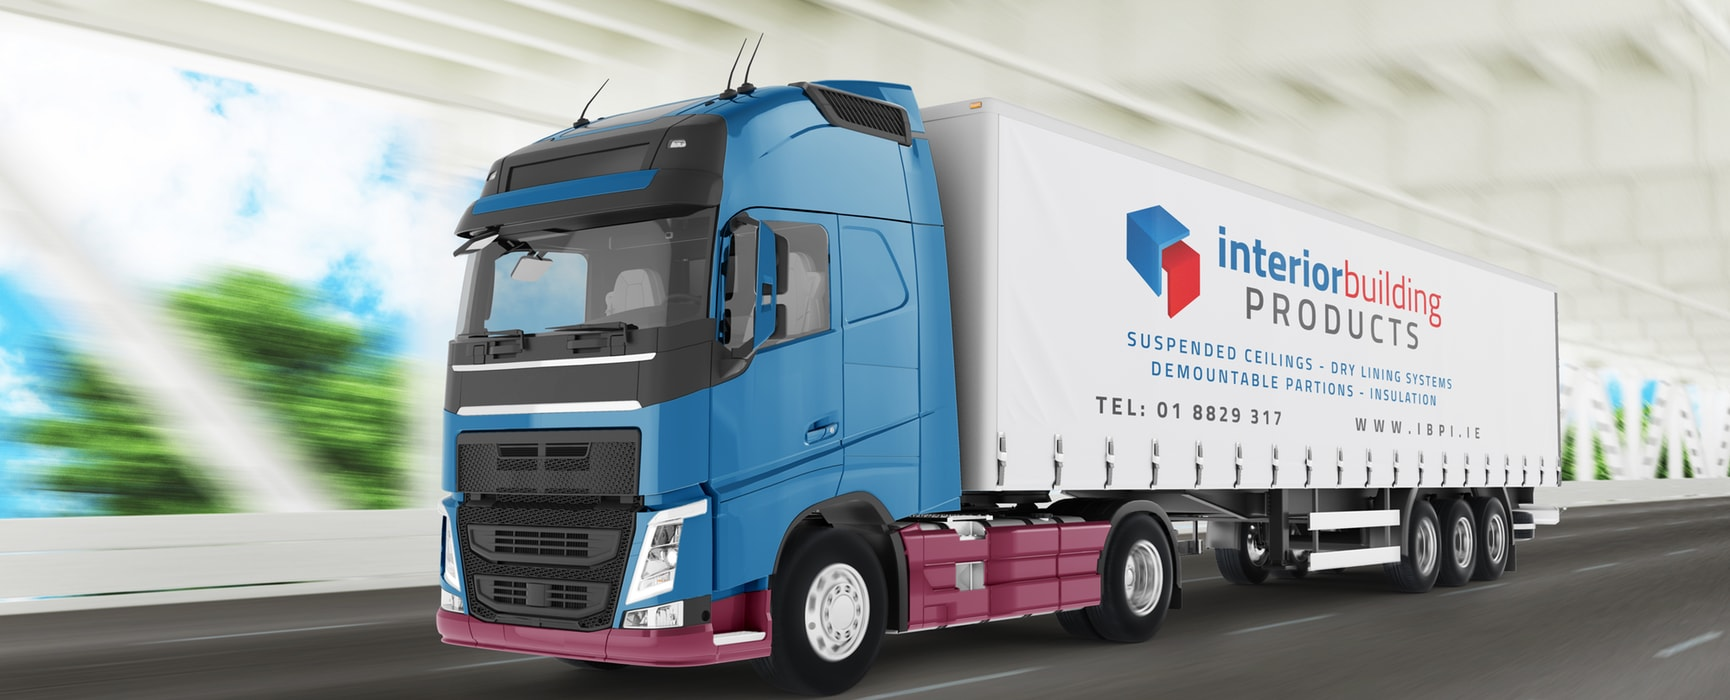 Interior Building Products - Artic Lorry Mockup